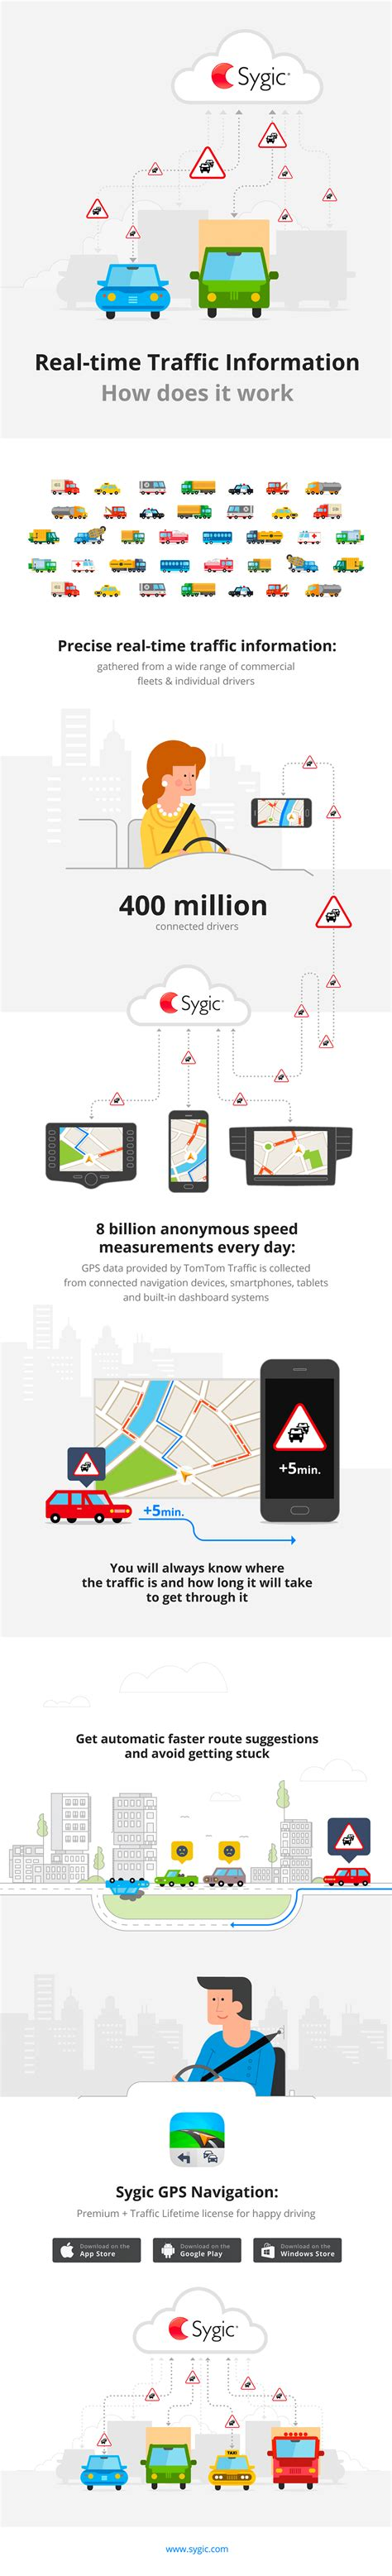 Real-time Traffic Information – How Does it Work? - Sygic